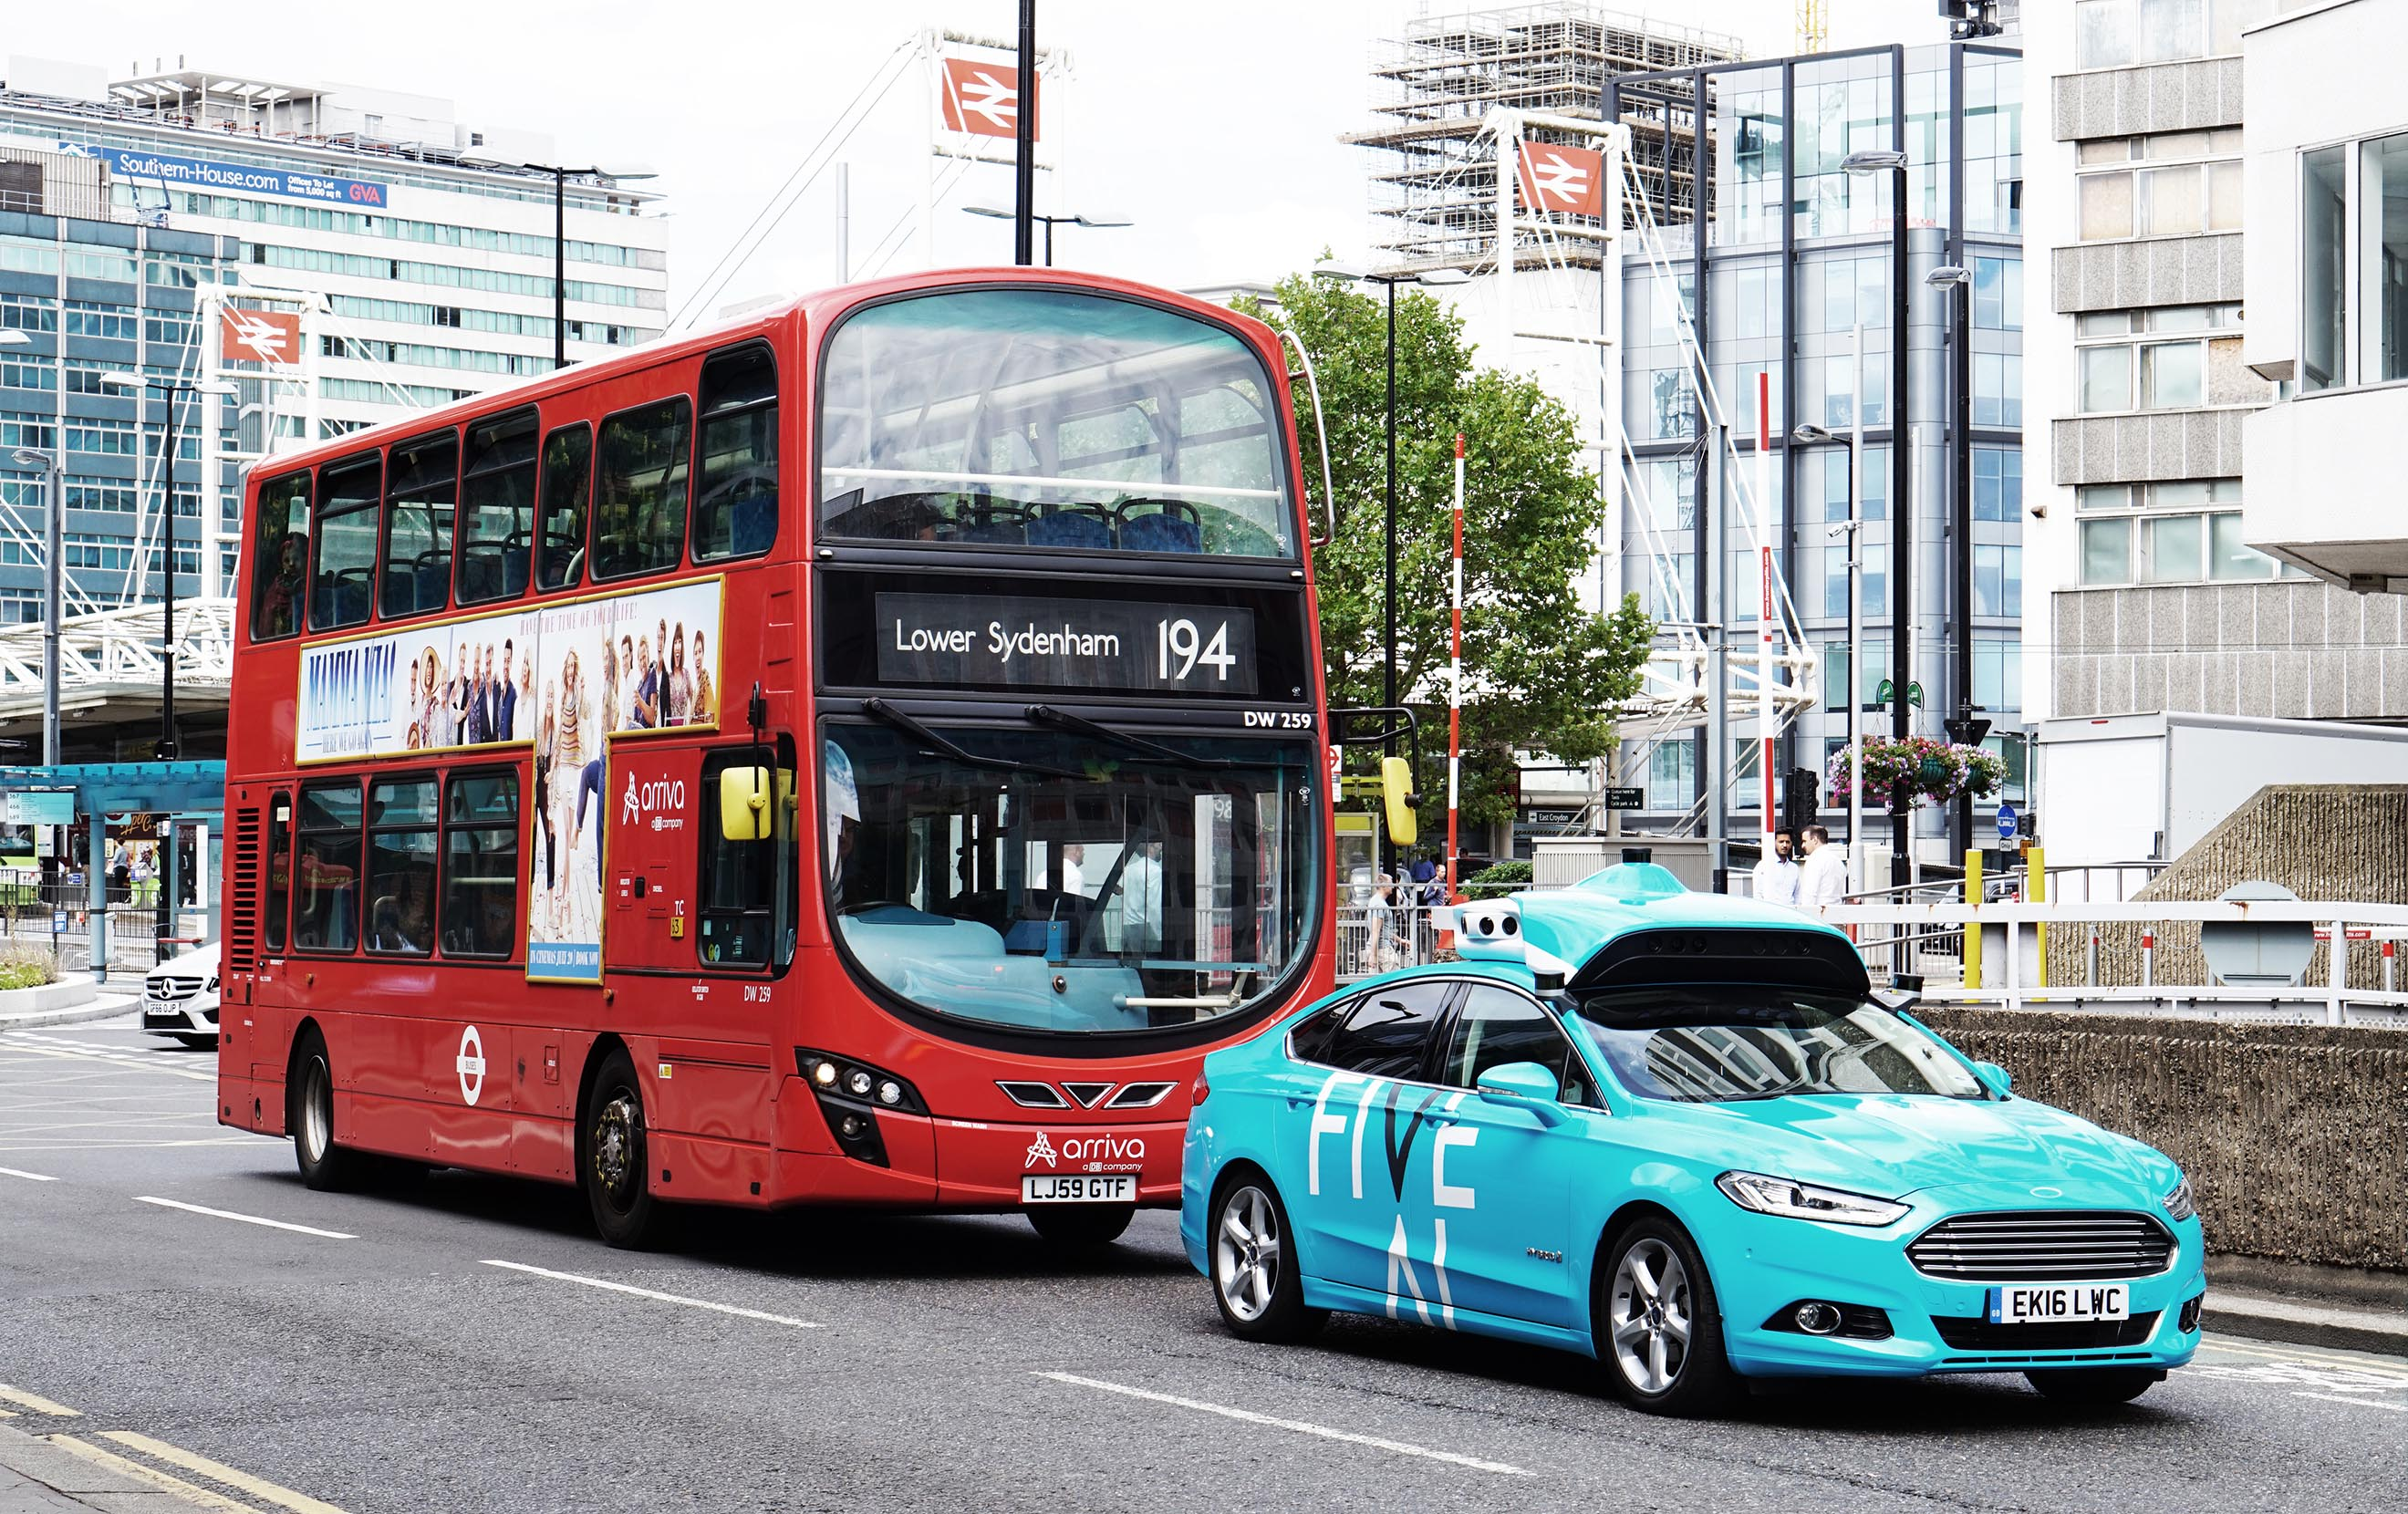 Self-driving startup FiveAI launches commuter trials on London streets